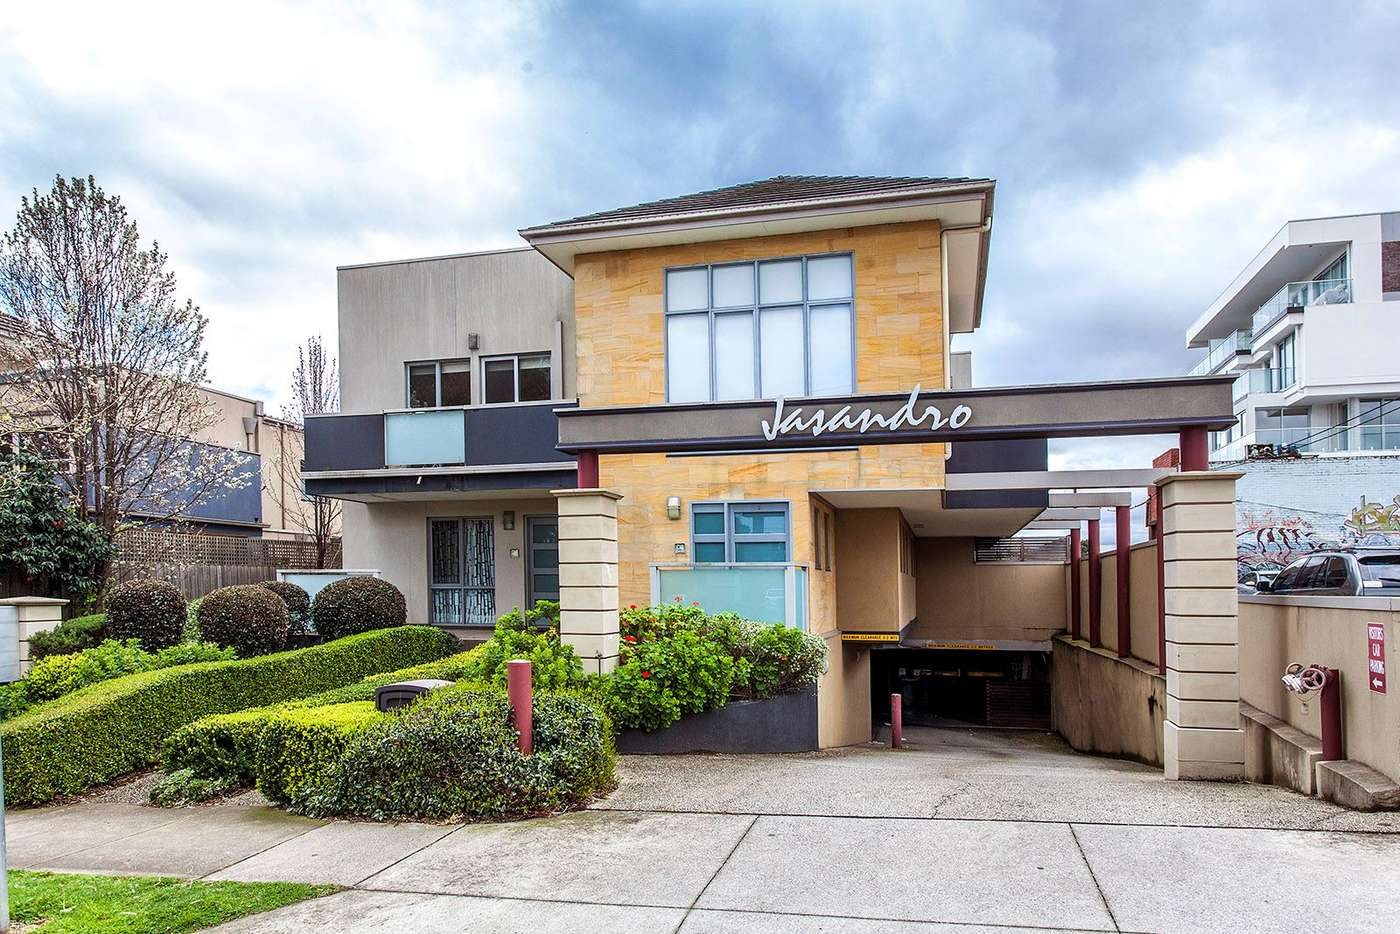 Main view of Homely apartment listing, 13/1 Kenilworth Parade, Ivanhoe VIC 3079